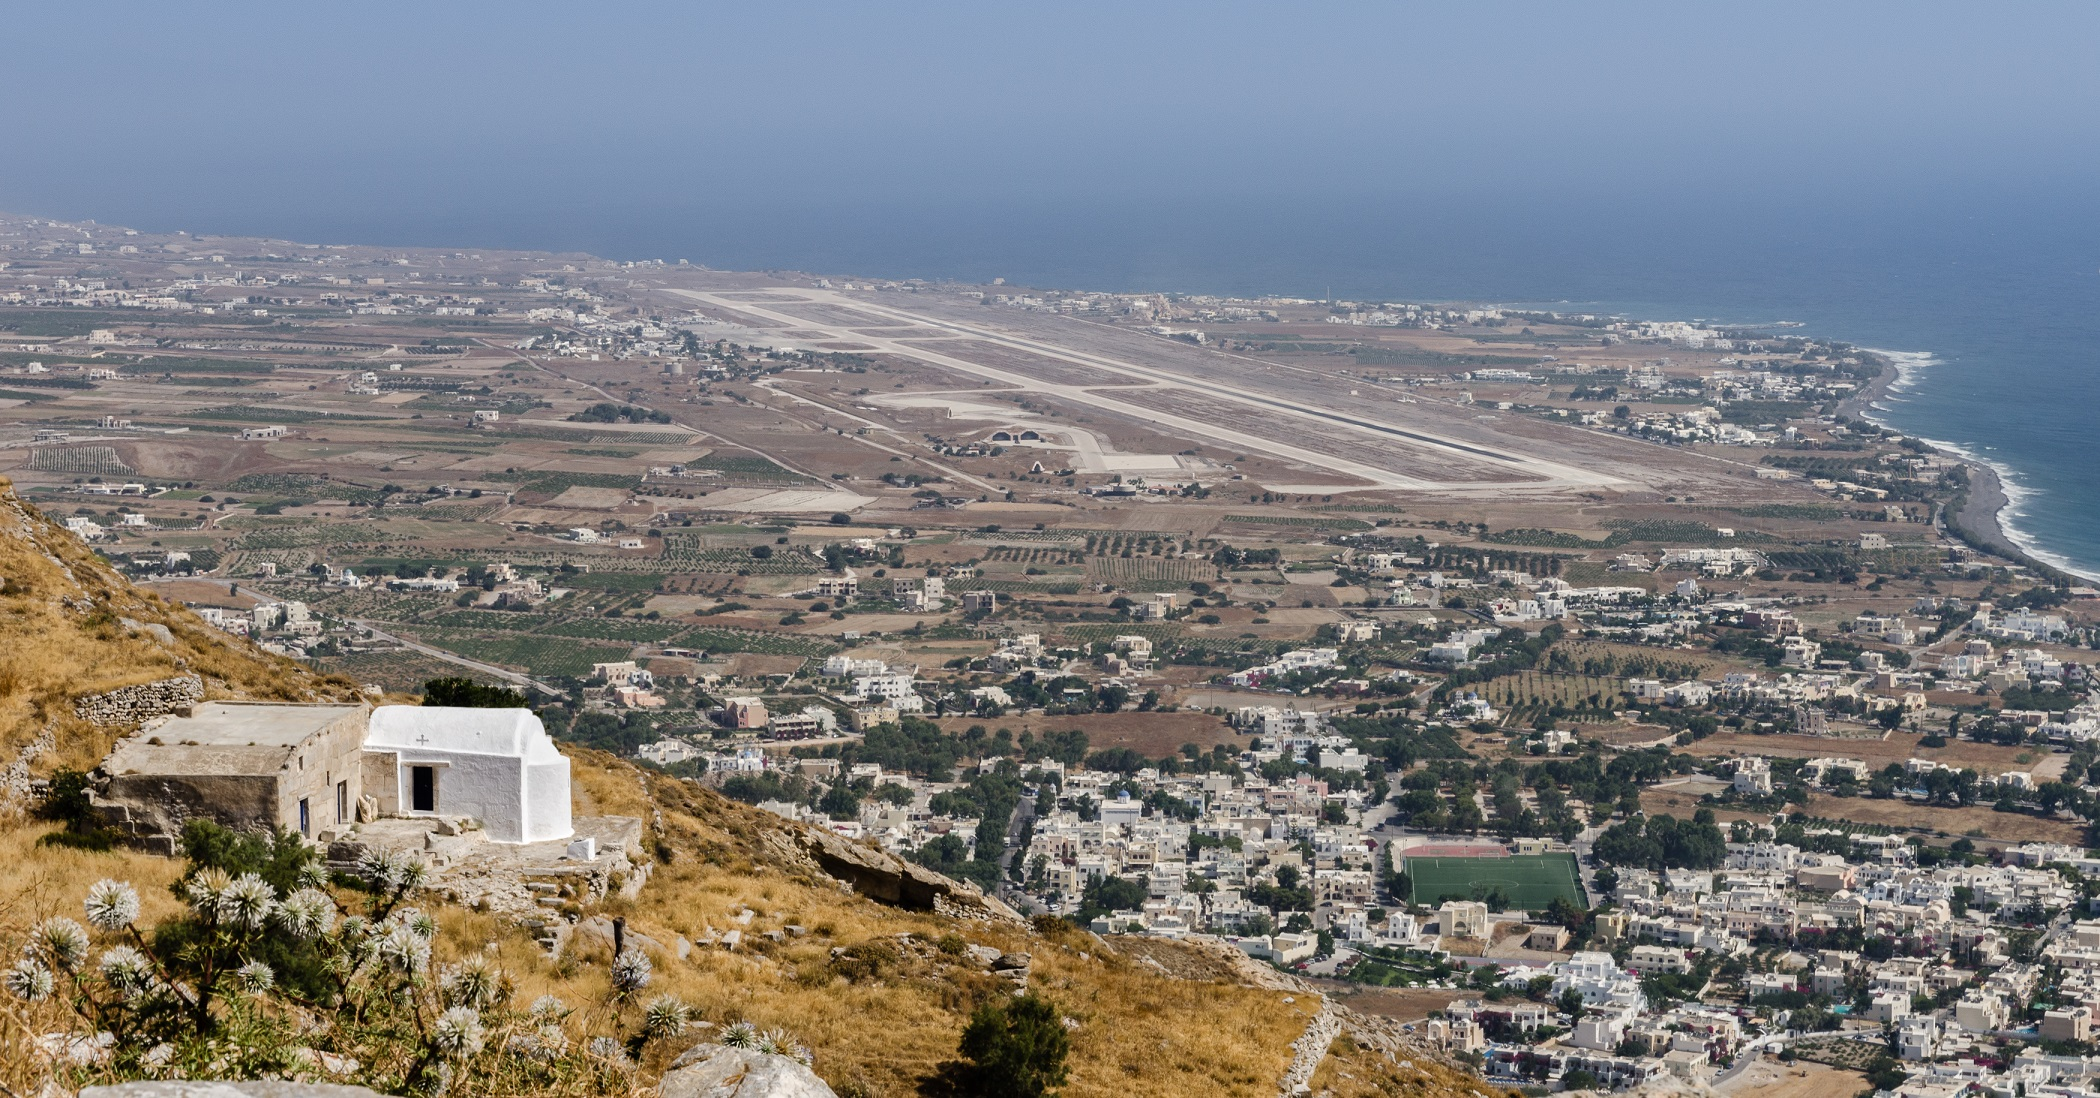 Heeron - Airport and Kamari seen from Messa Vouno